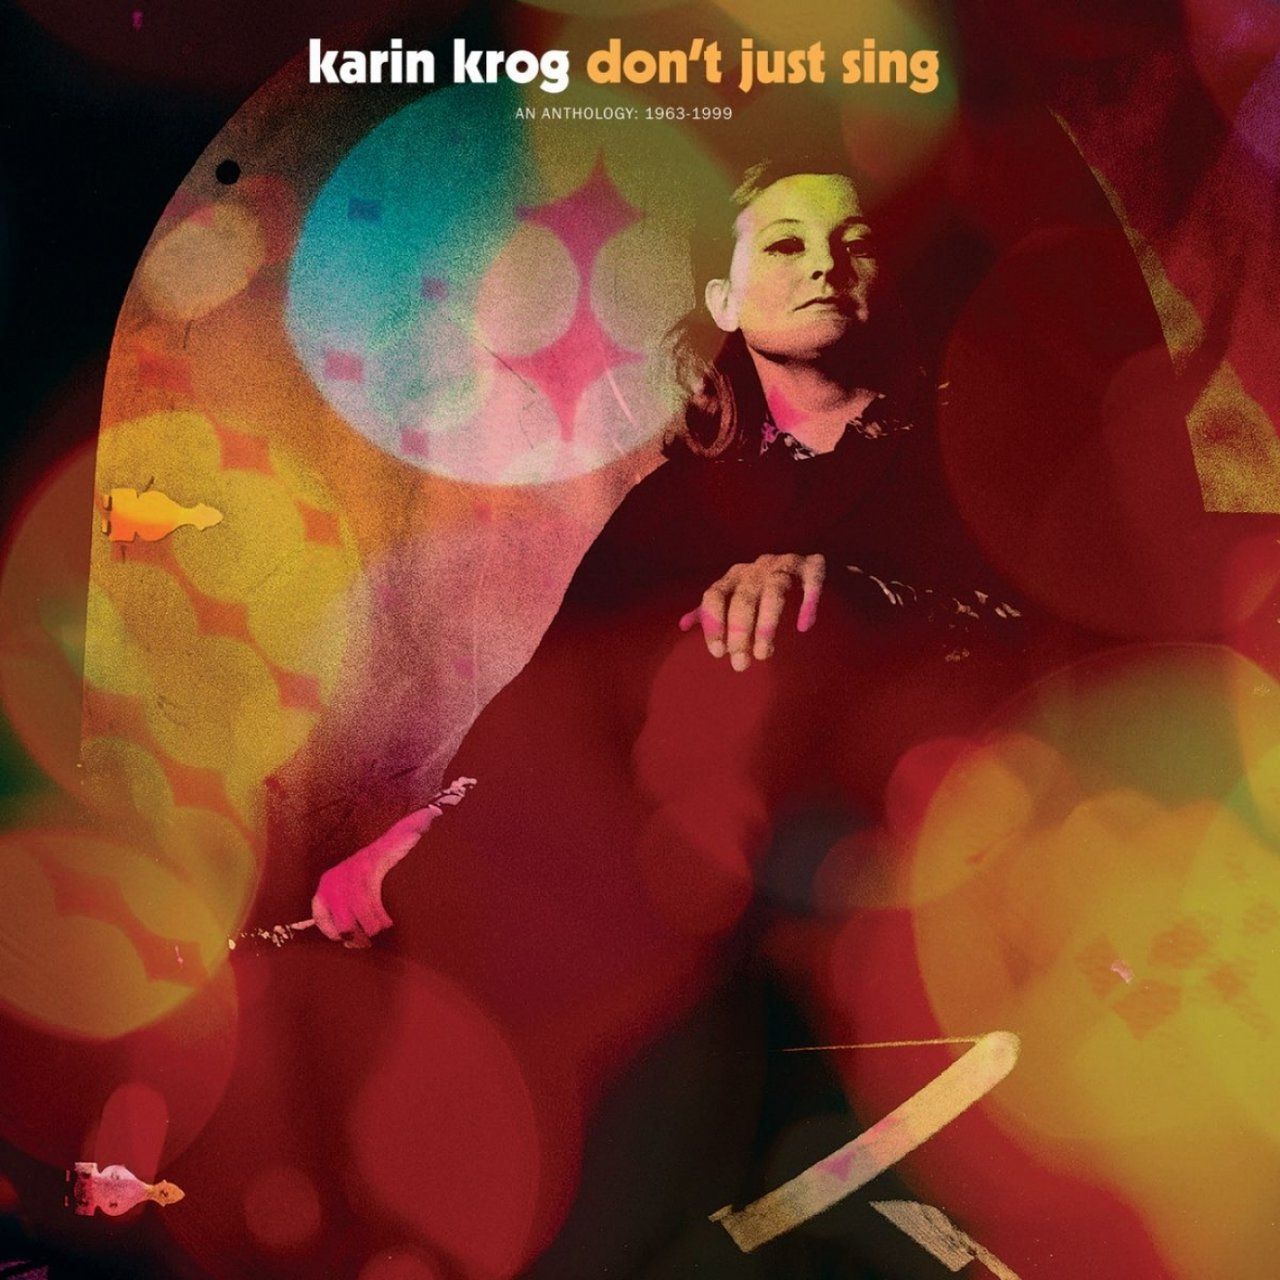 Don't Just Sing: A Karin Krog Anthology (1963-1999)